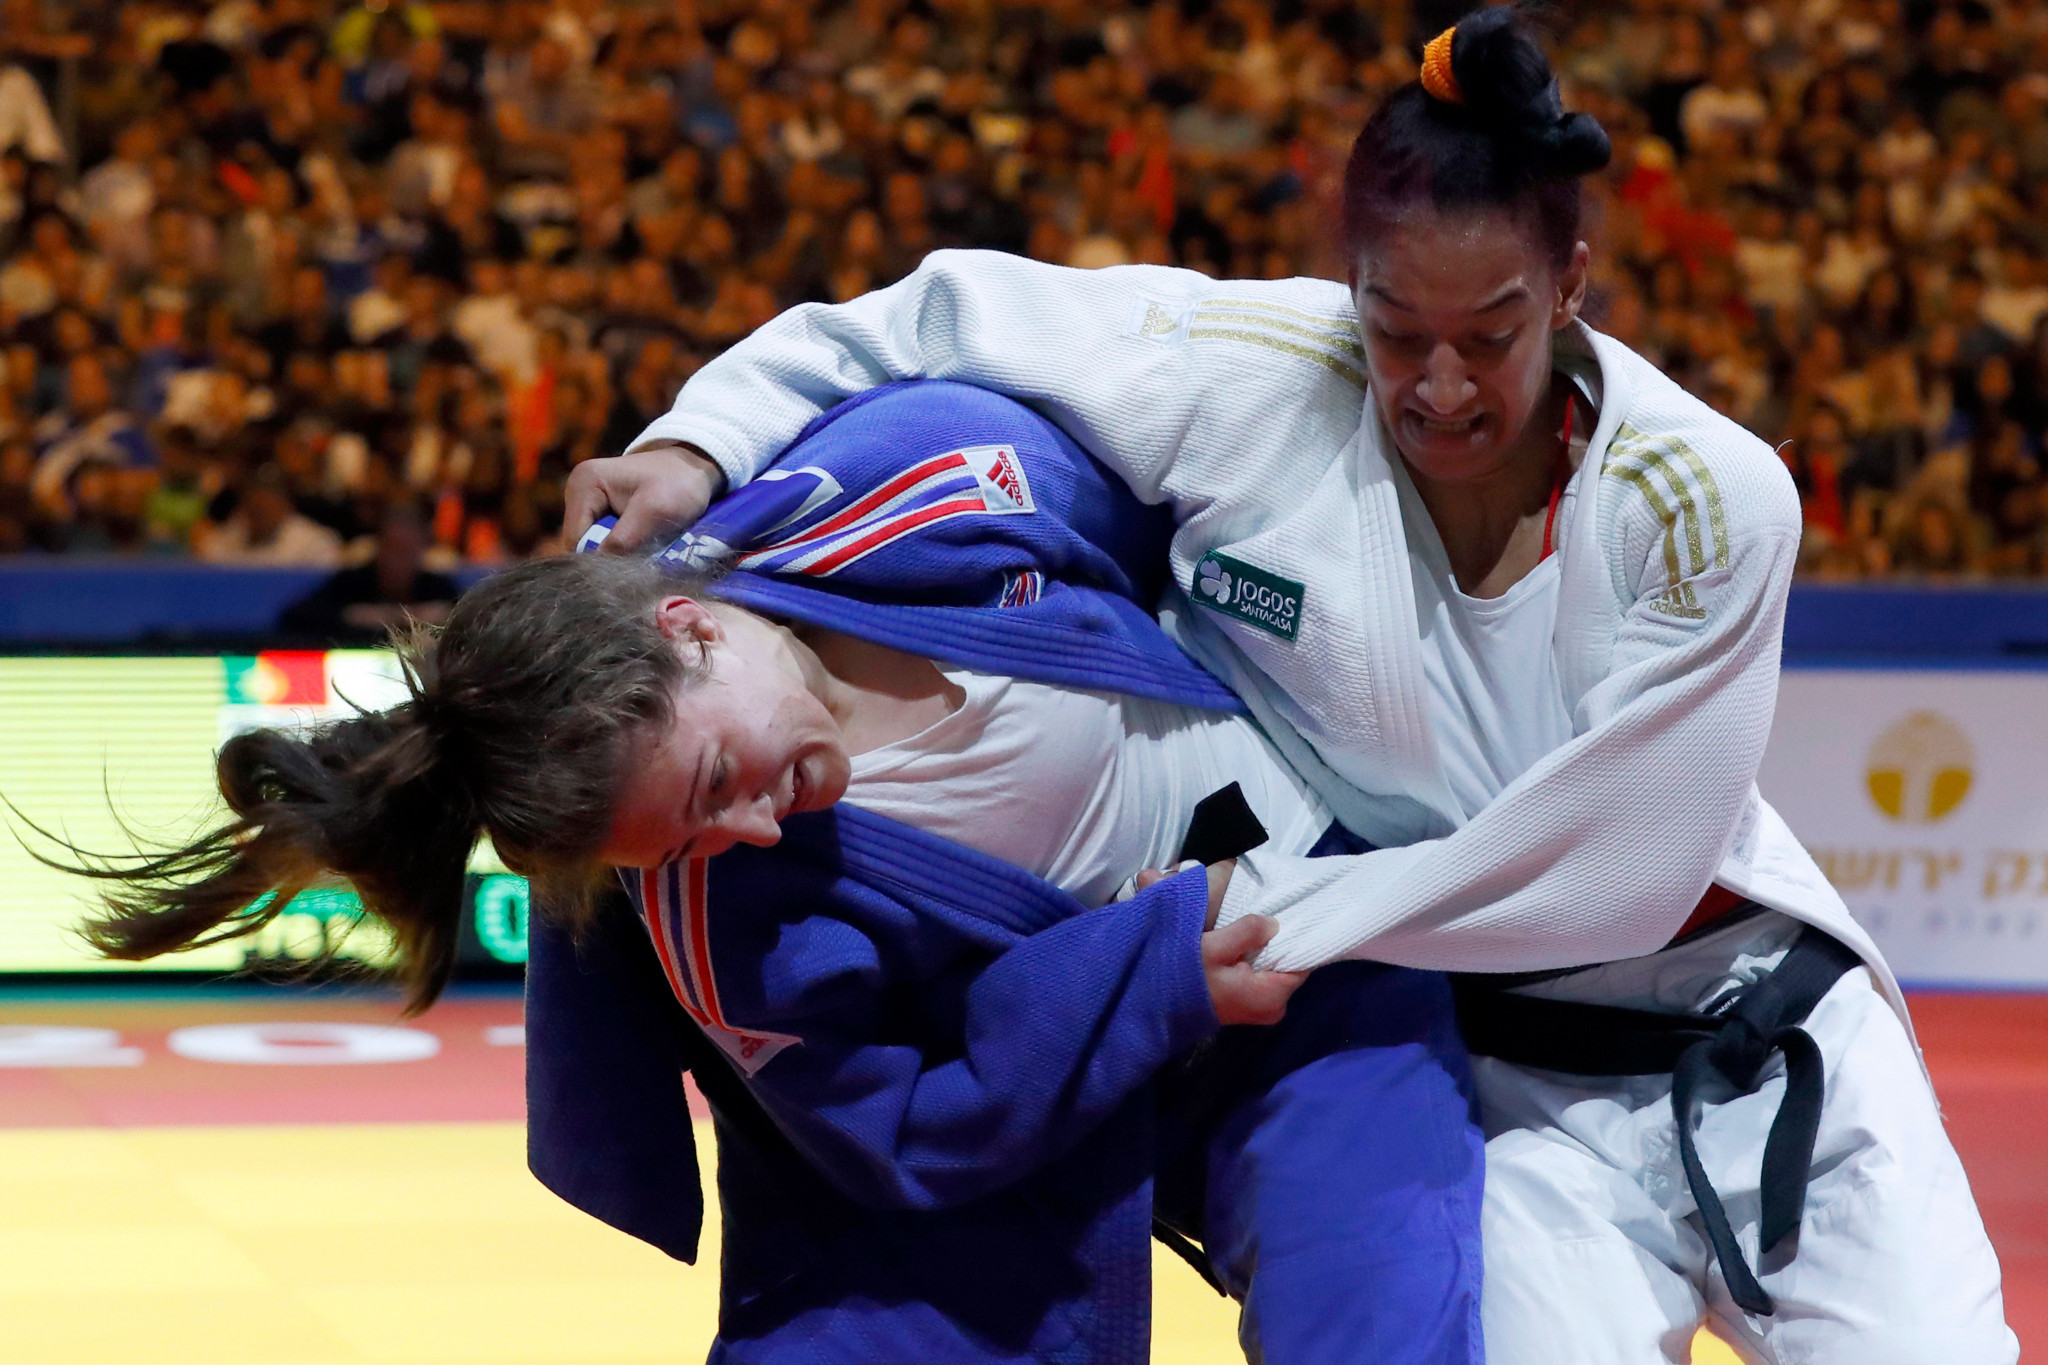 Many British judokas are gaining prominence on the international stage, including world bronze medallist Natalie Powell ©Getty Images